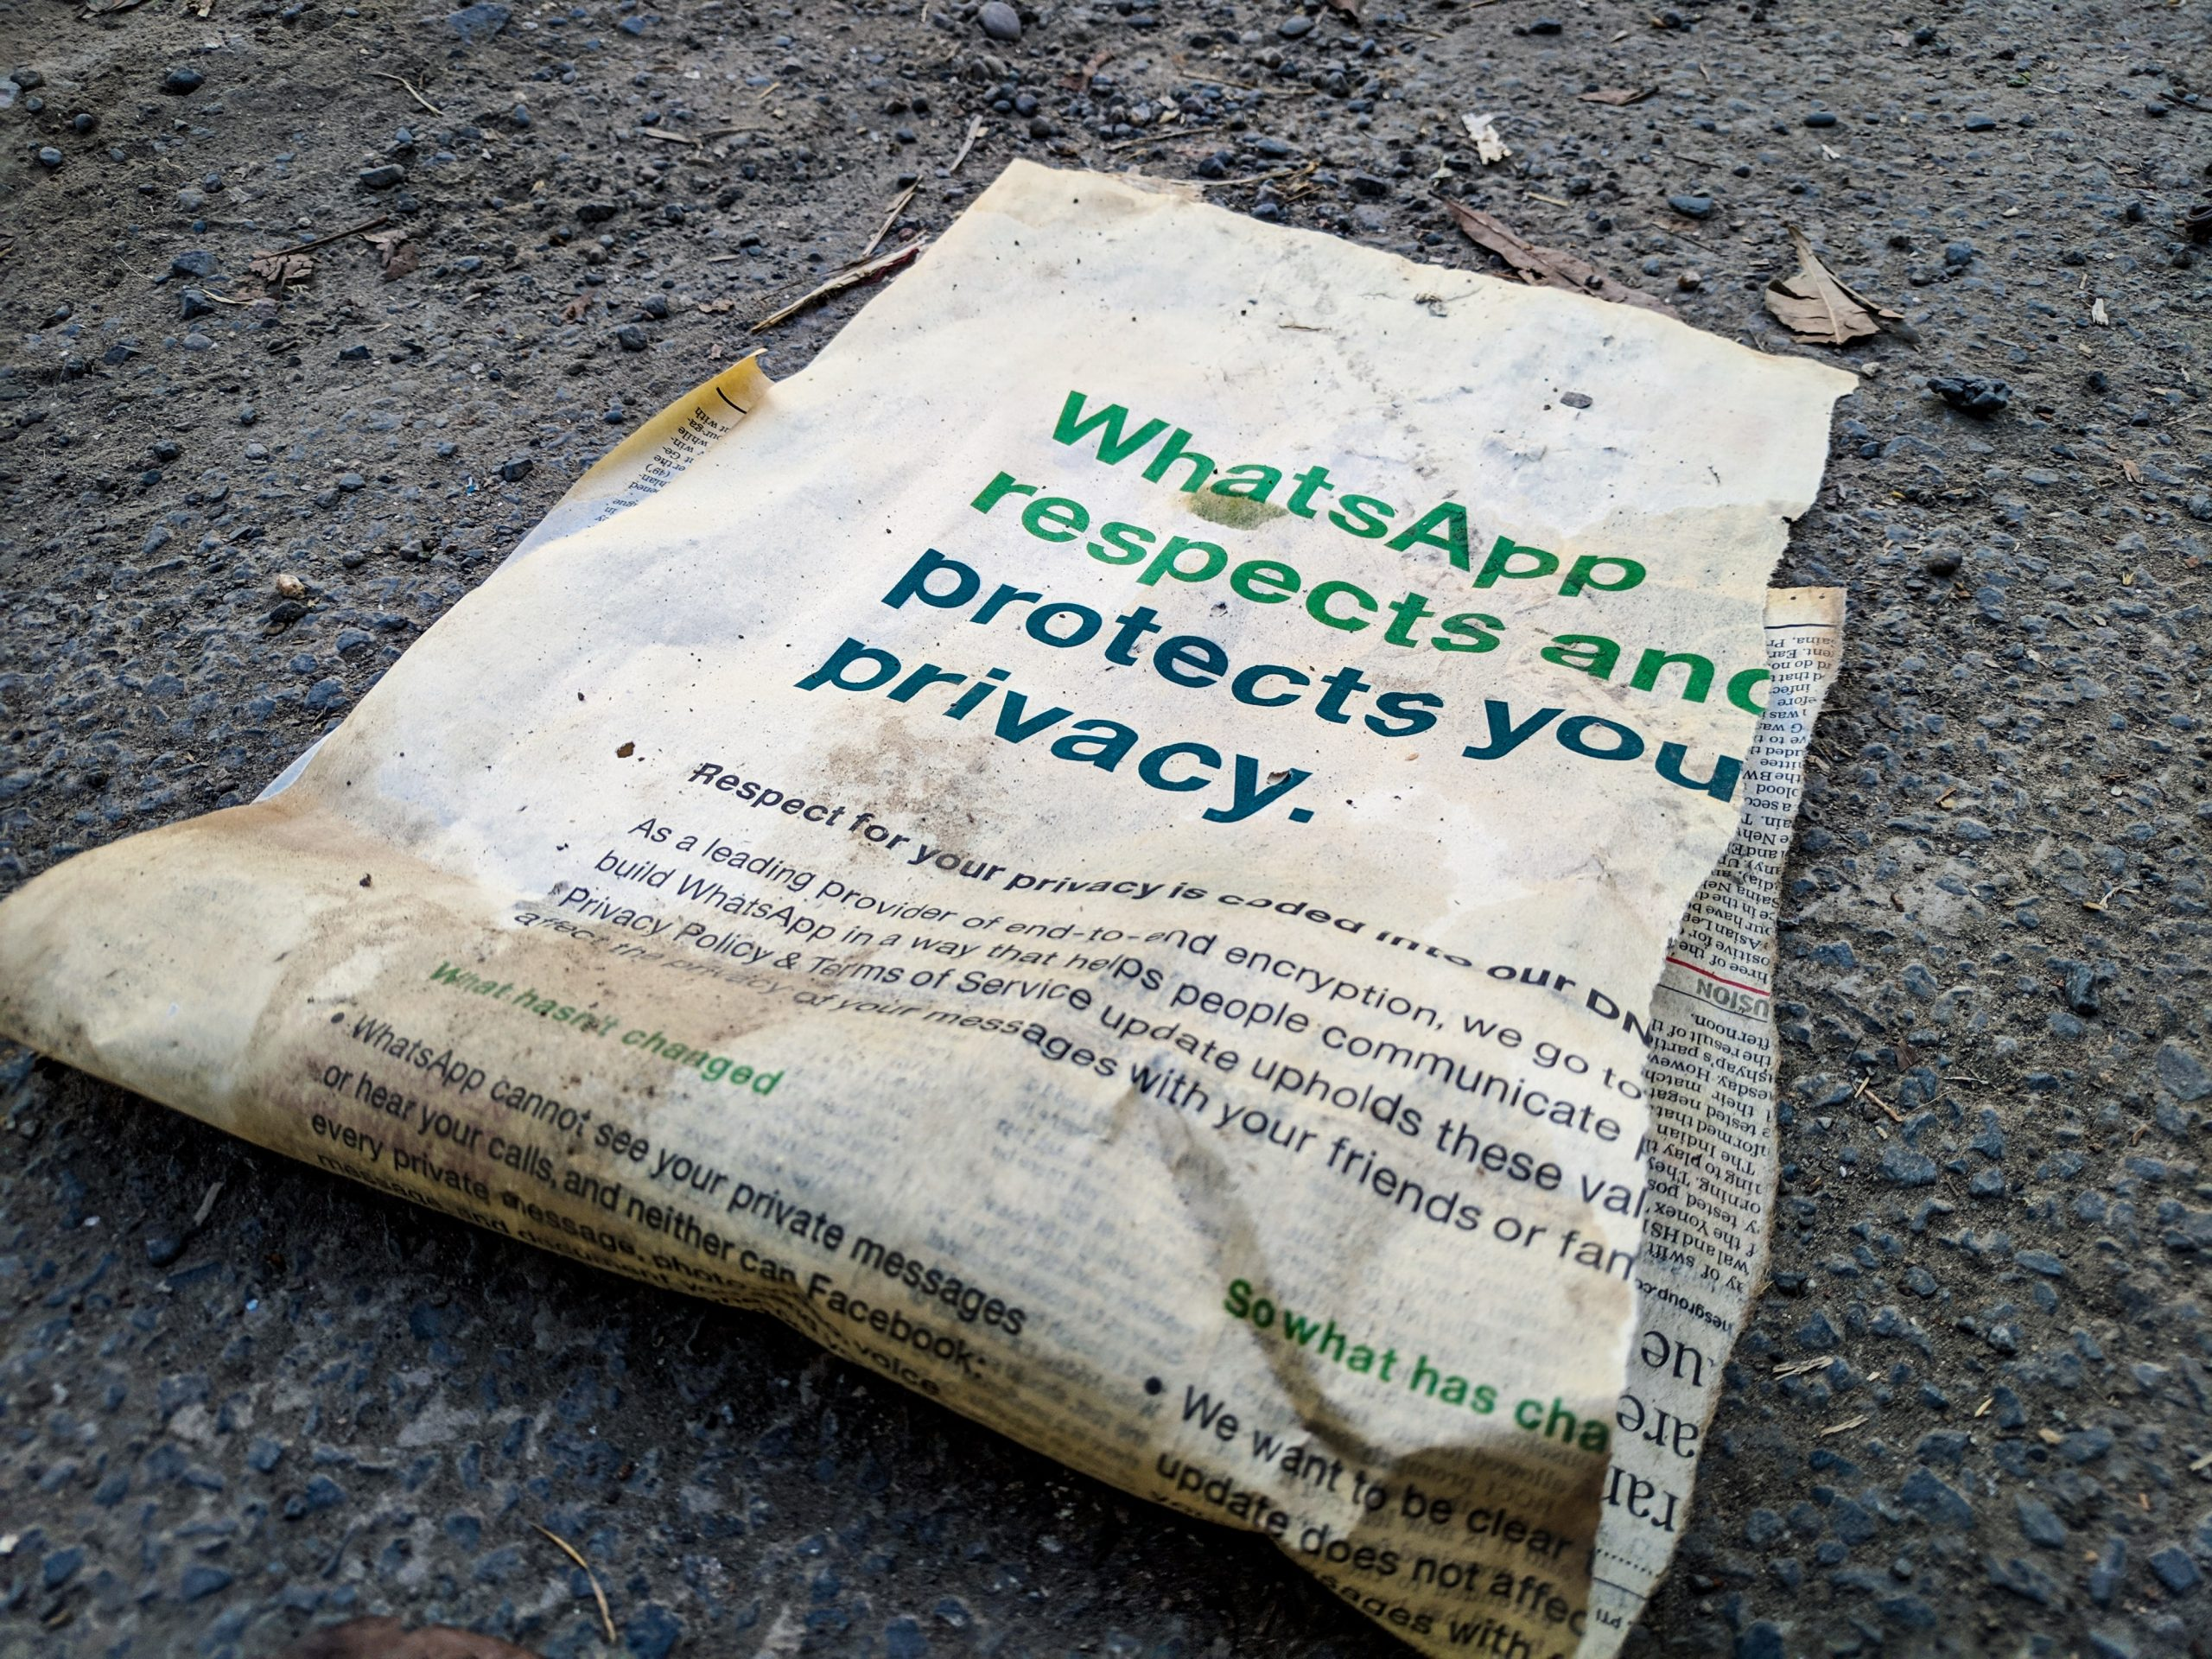 WhatsApp defiant, won't withdraw privacy update